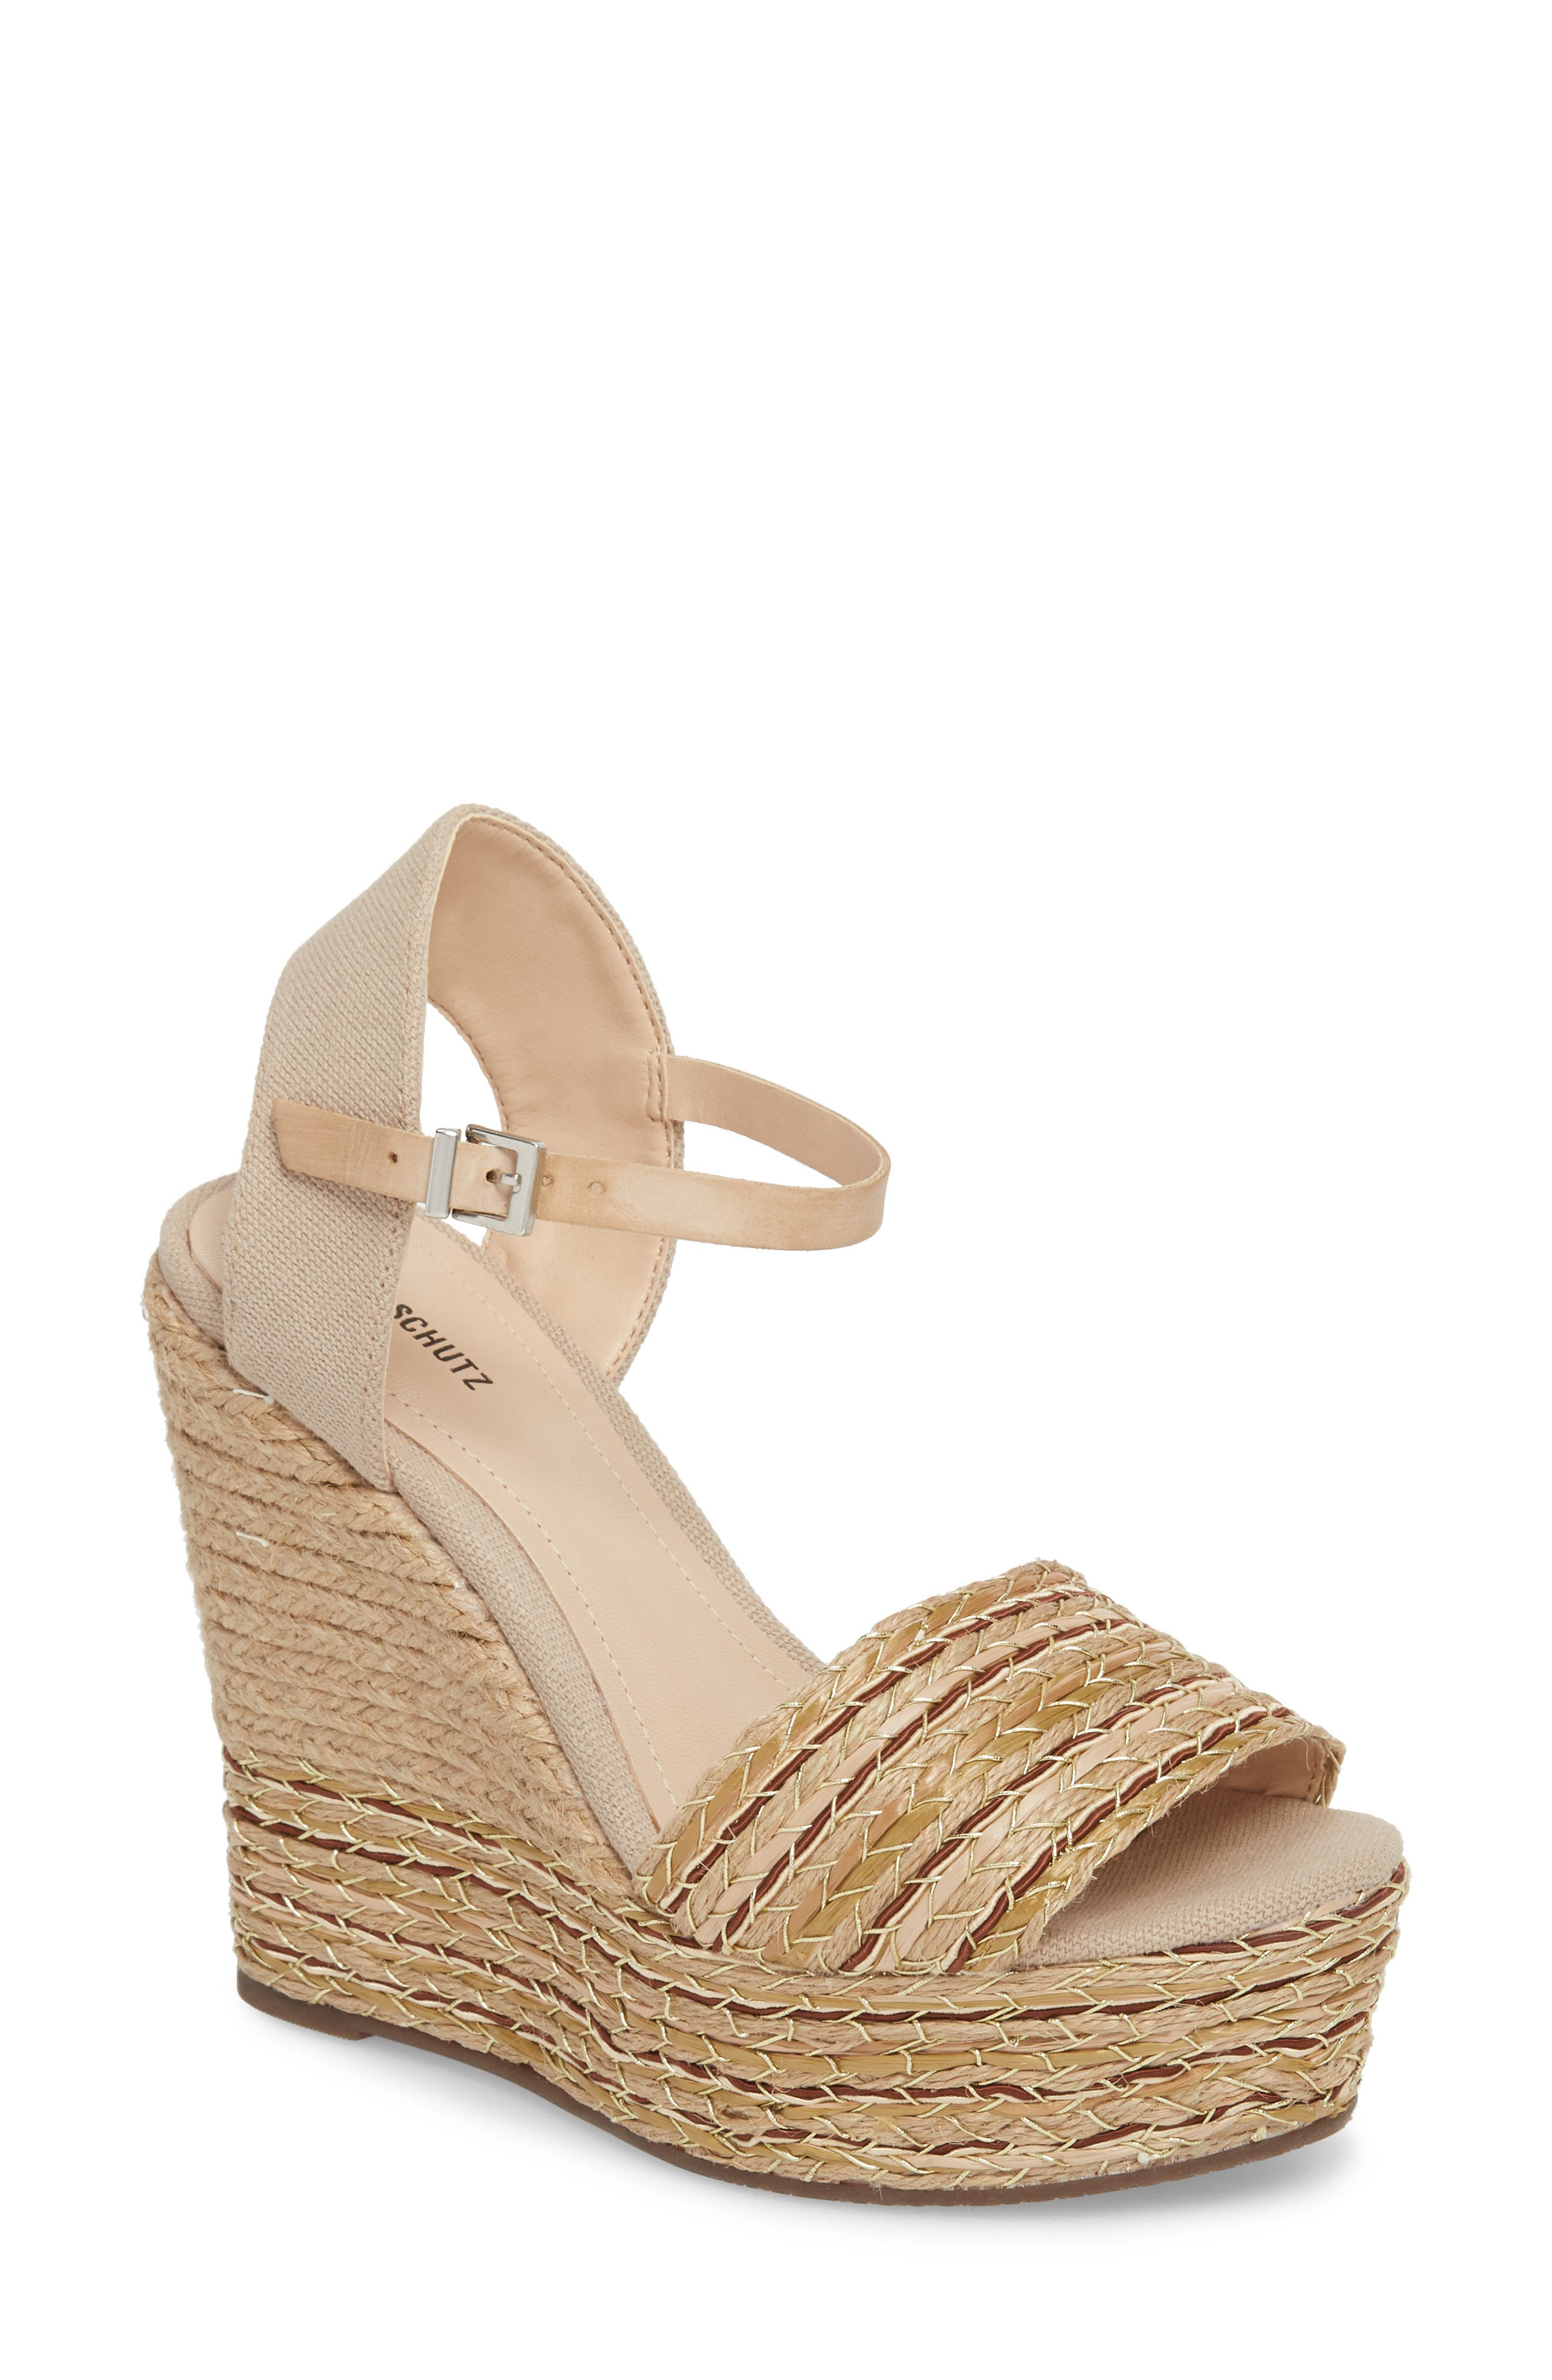 Rilark Platform Wedge Sandal,                             Main thumbnail 1, color,                             Coco Fabric